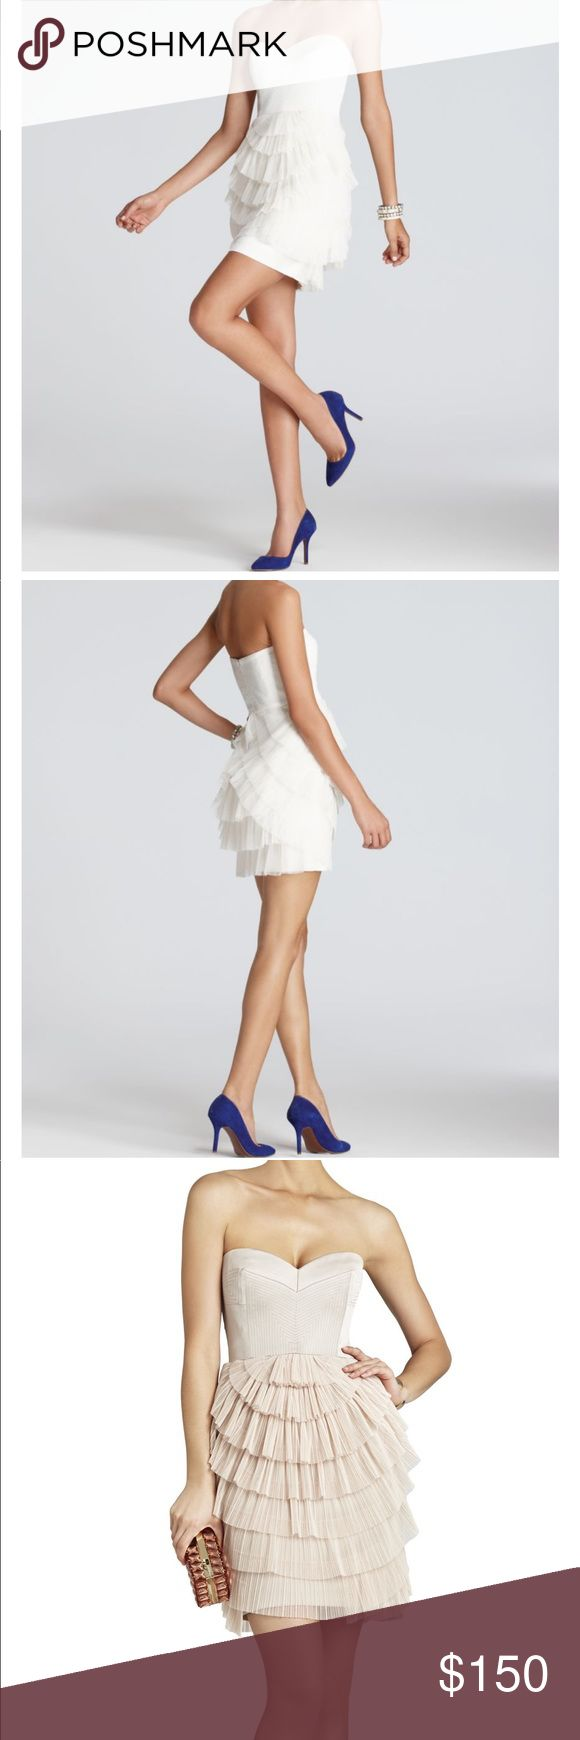 "BCBG  MAX AZRIA  Sas Strapless Pleated Dress The perfect party dress for any adventure, from happy hour to after hours. (Separate straps are included if support is needed) Measures approximately 25"" from neckline to hem. Classic fit. Sweetheart neckline. Strapless. Topstitched bodice. Contrast trim. Tiered, contrast-knit skirt with pleated detailing.  Concealed center back zipper with hook-and-eye closure. Self: Acetate, Nylon, Spandex satin. Contrast: Polyester mesh. Lining: Polyester crepe…"